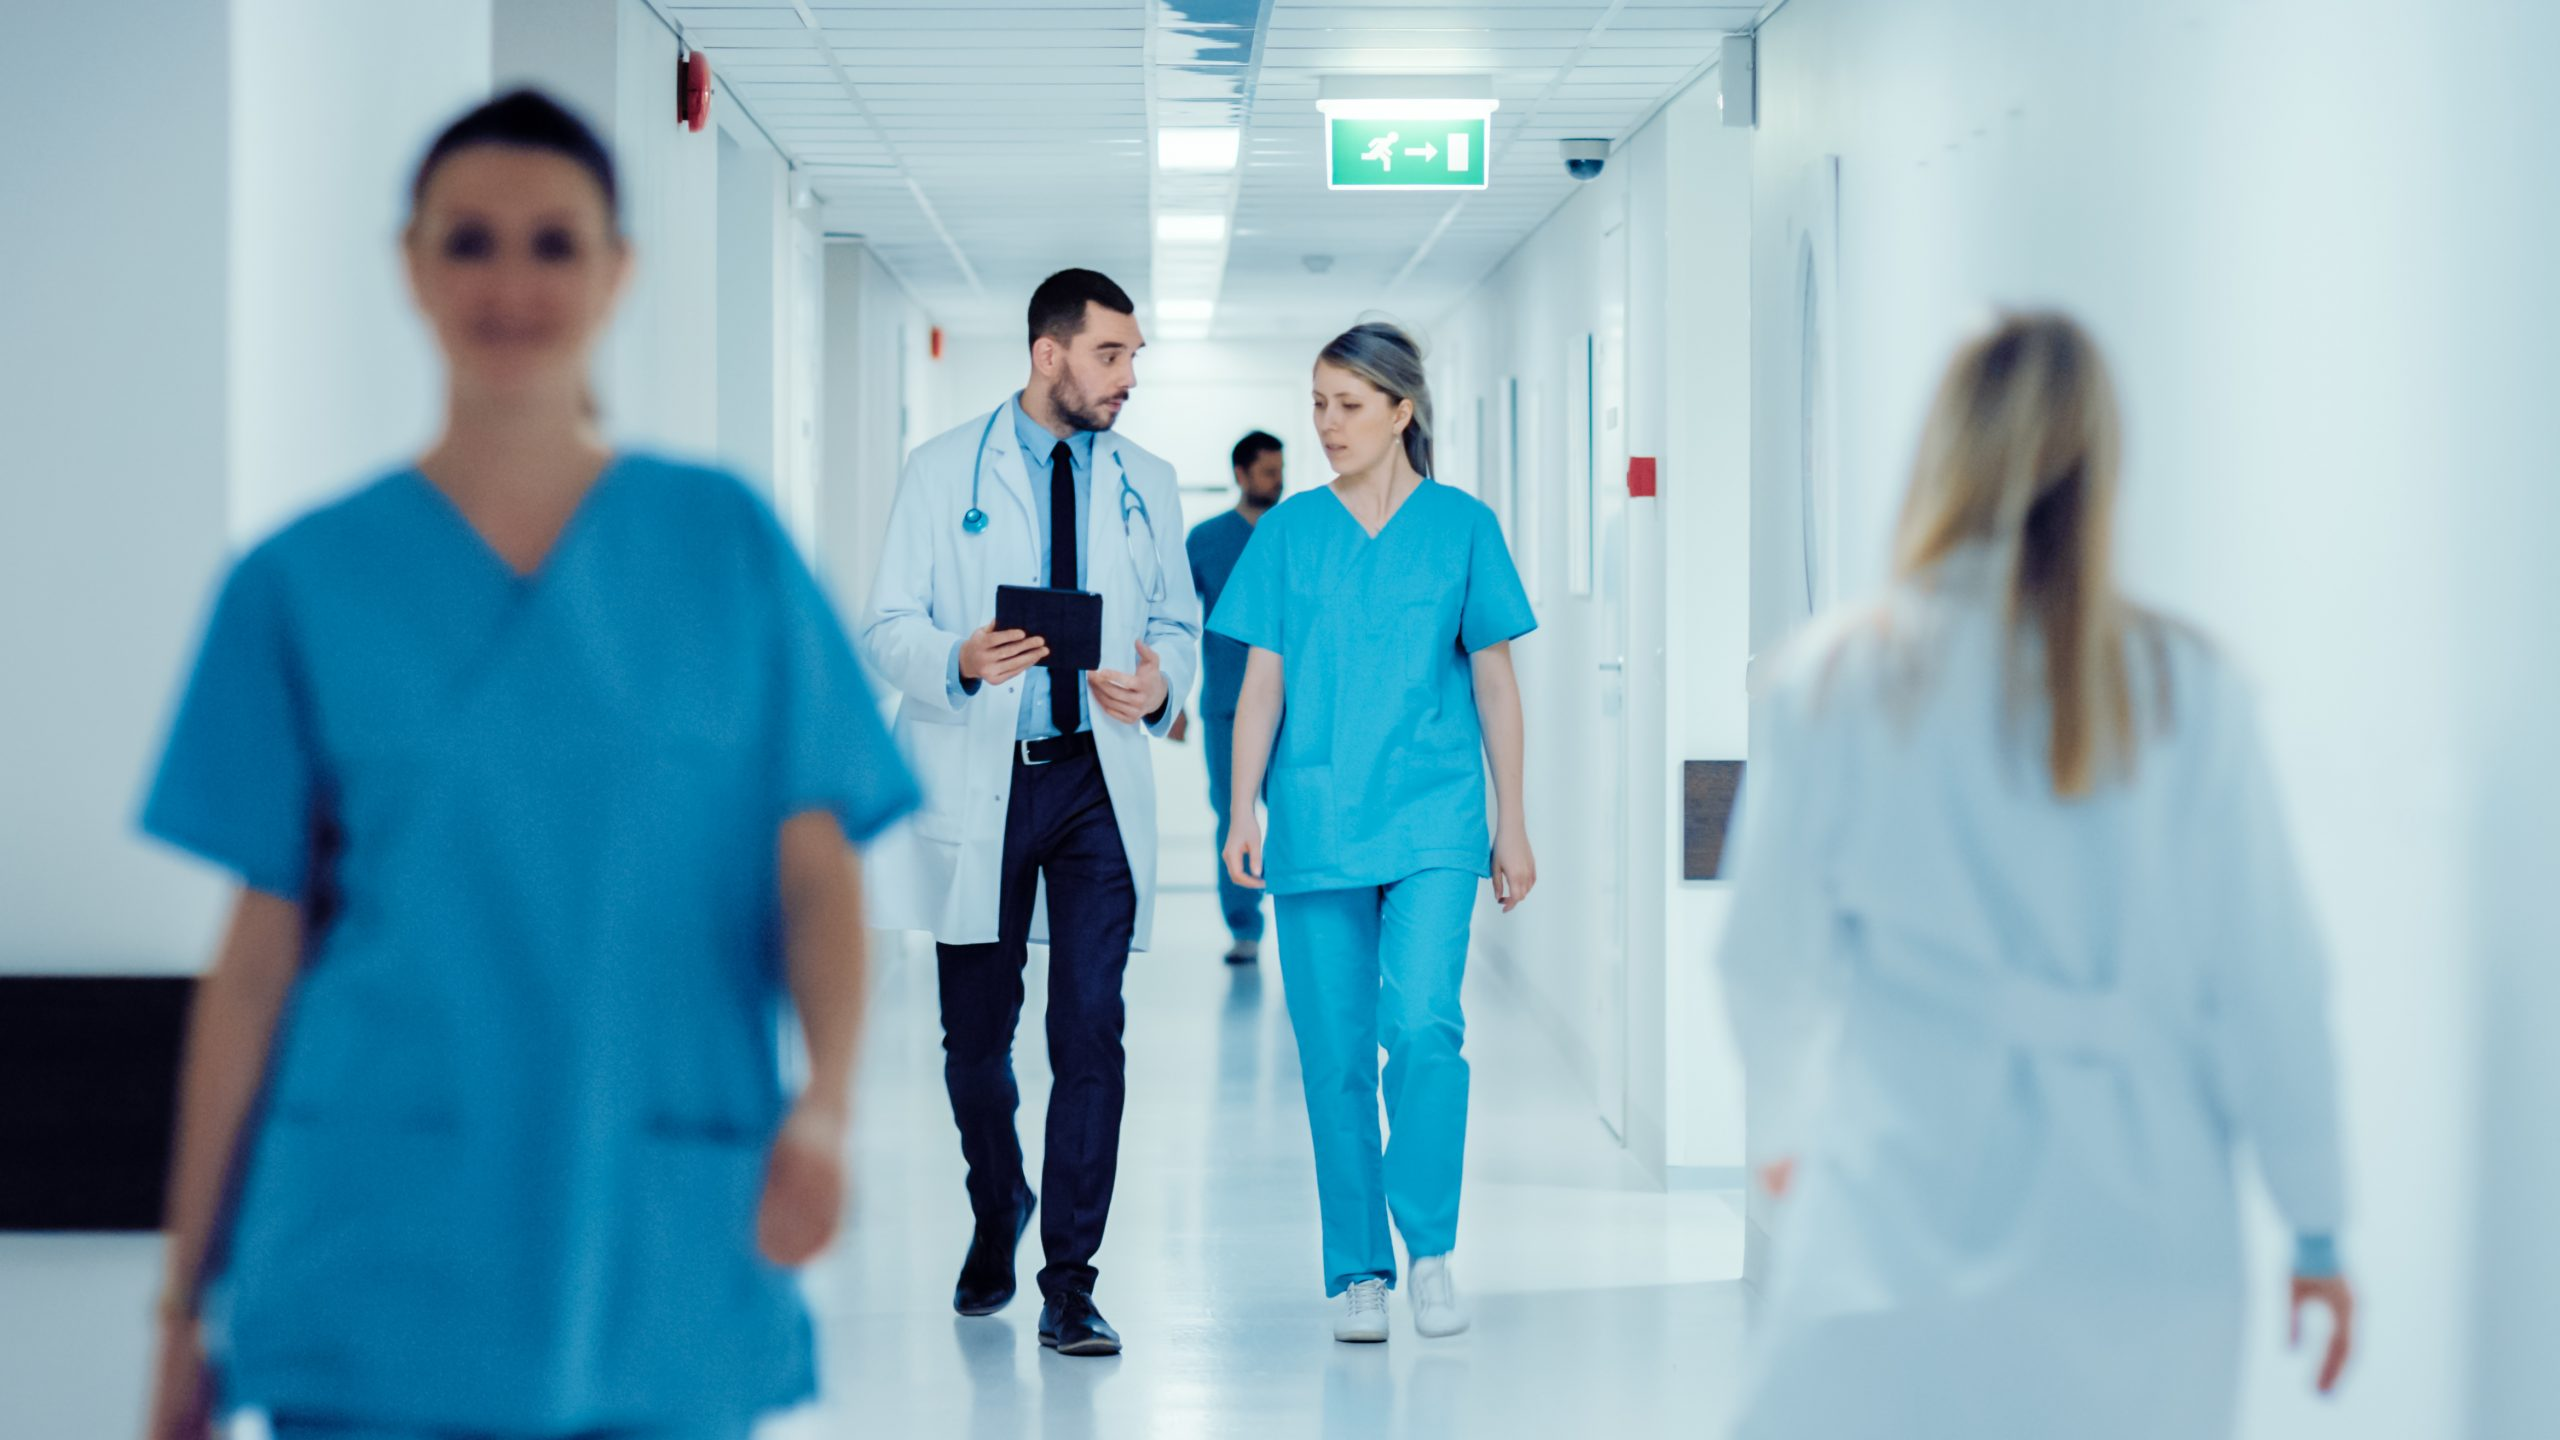 Surgeon and Female Doctor Walk Through Hospital Hallway, They Consult Digital Tablet Computer while Talking about Patient's Health. Modern Bright Hospital with Professional Staff.